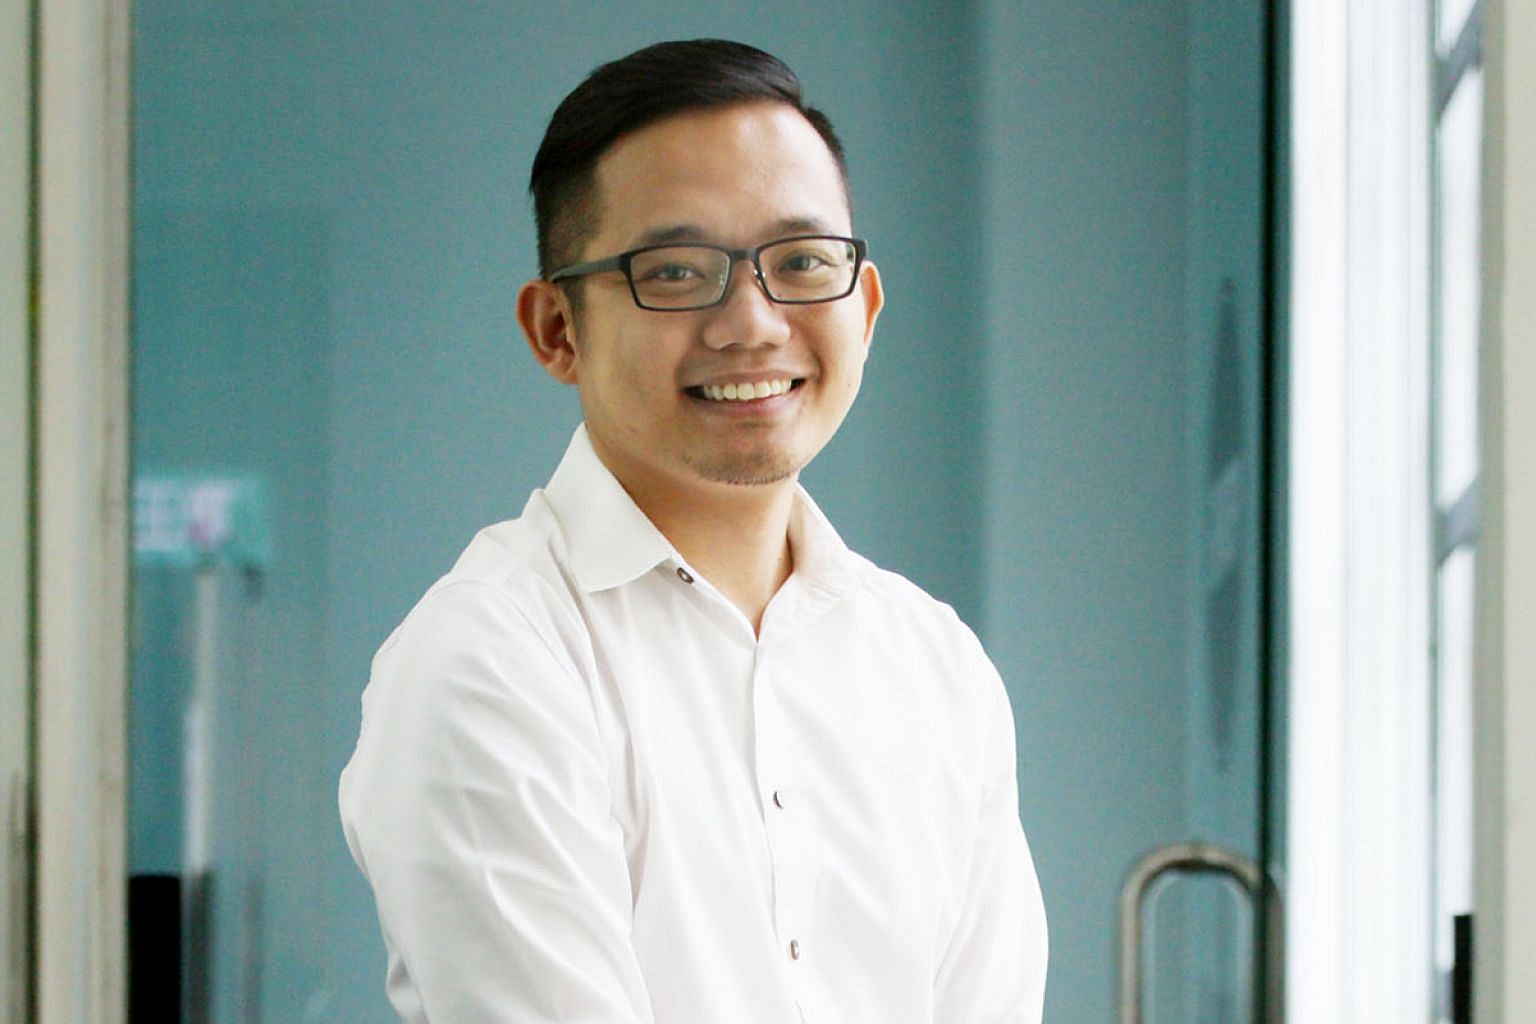 Mr Lewis Liu, who organises conversations about race, says there are still gaps to be addressed in Singaporeans' understanding of diversity.